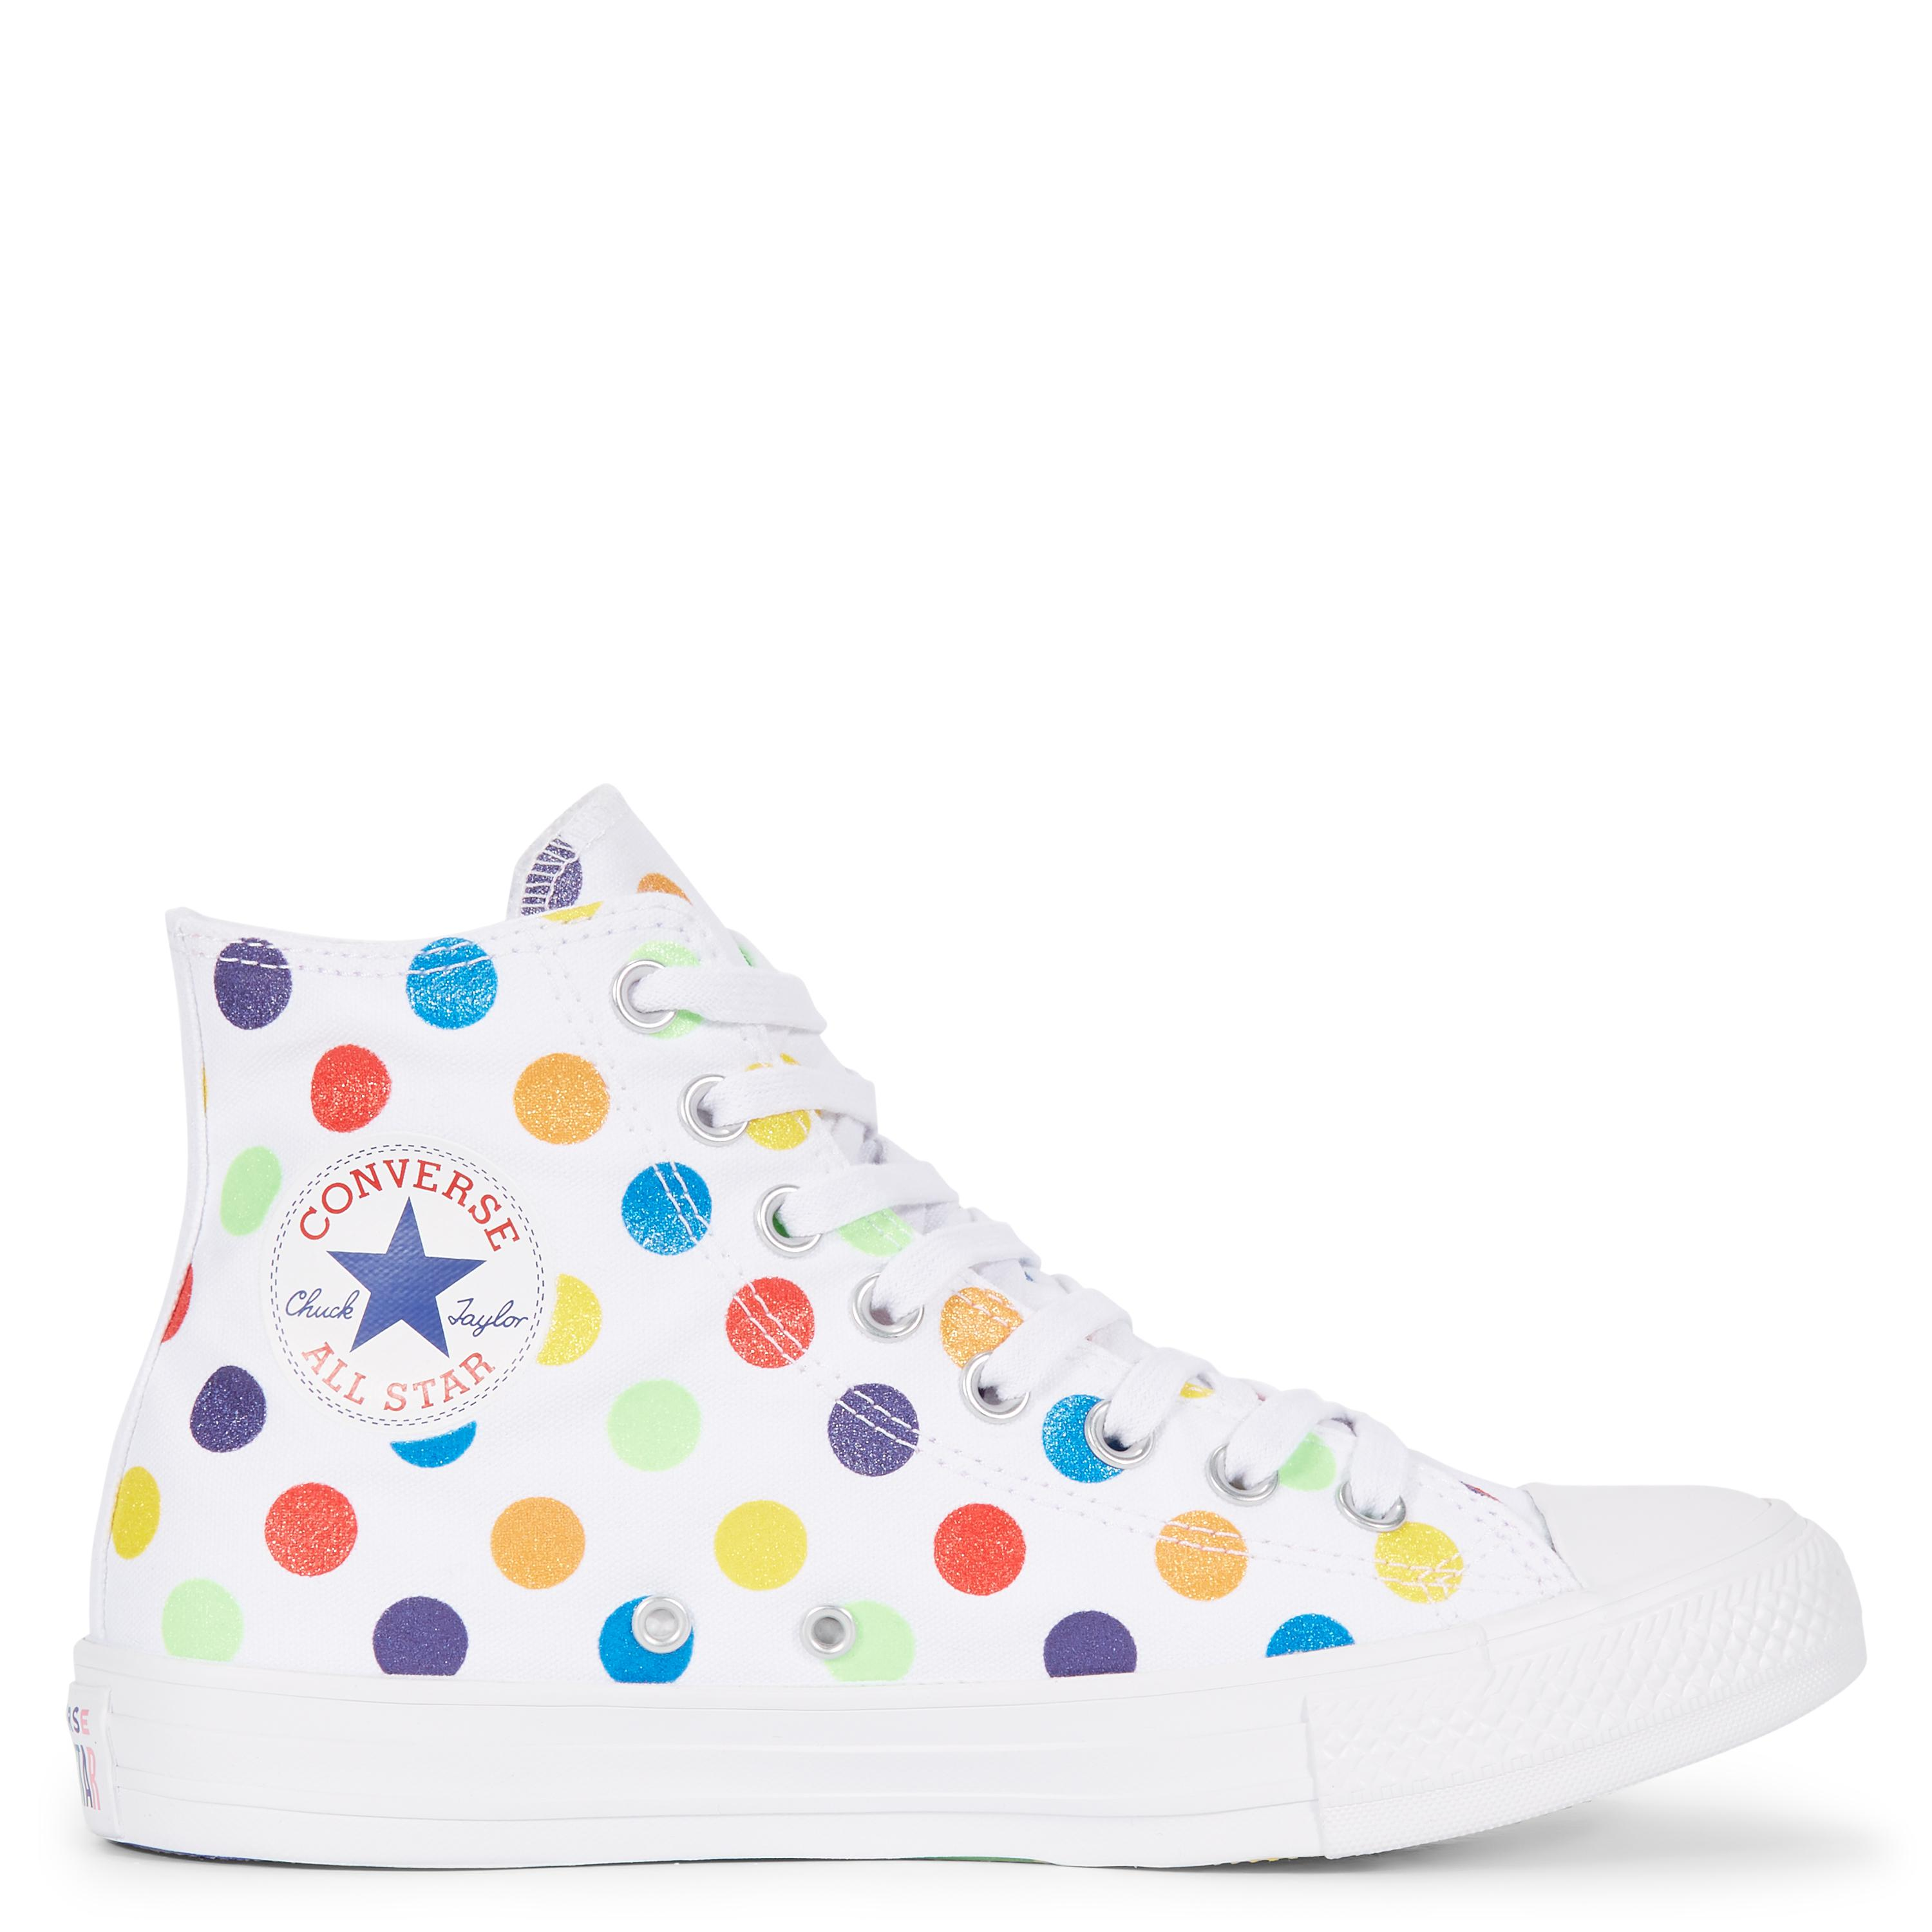 2fbe9eb58534 Converse Pride X Miley Cyrus Chuck Taylor All Star High Top in White ...